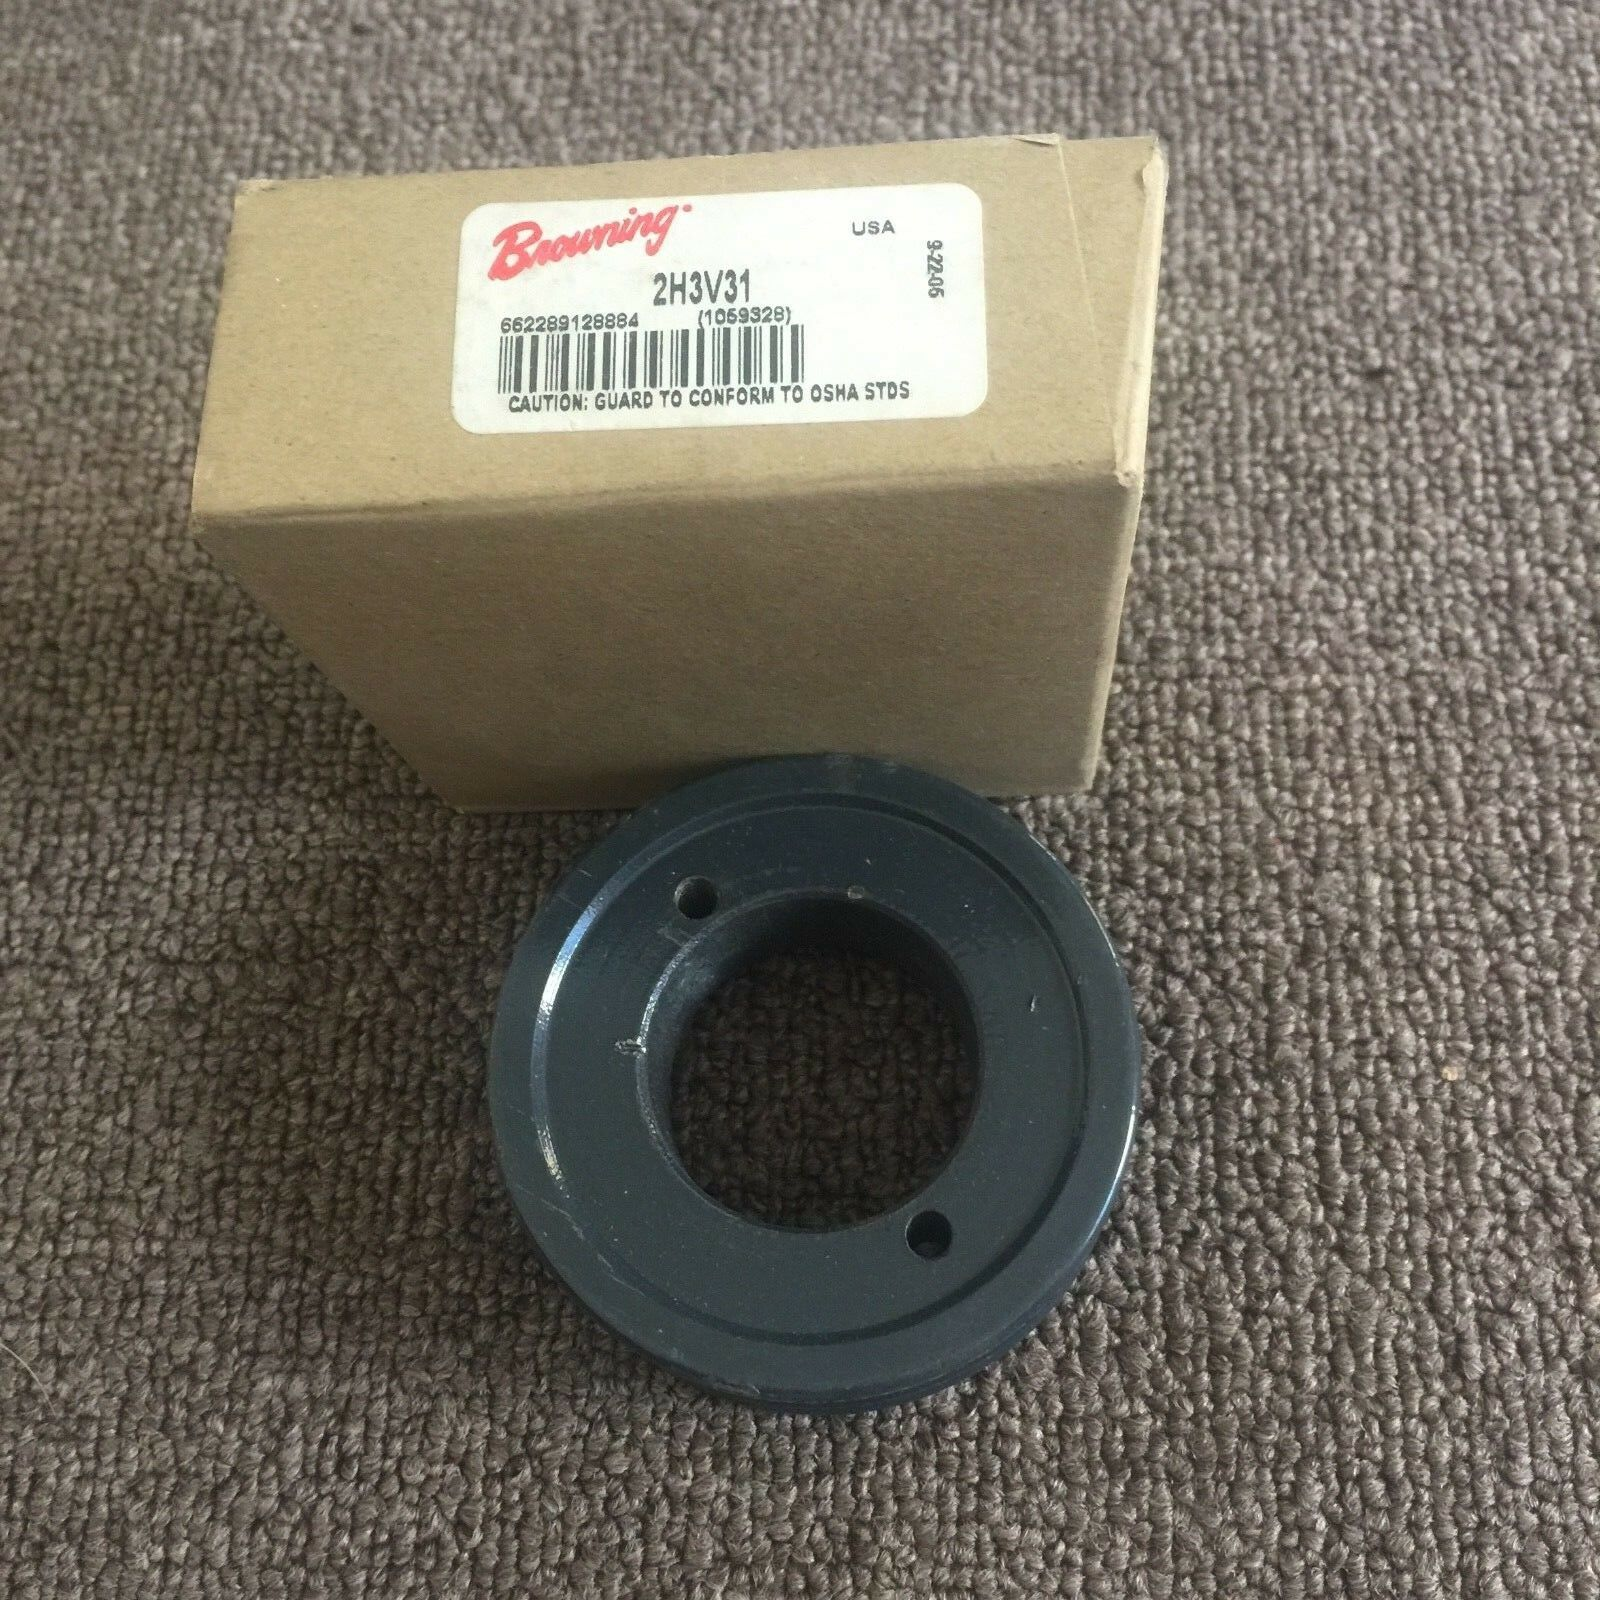 Uses H Bushing Cast Iron Browning 1H3V31 Split Taper Sheave 3V Belt 1 Groove